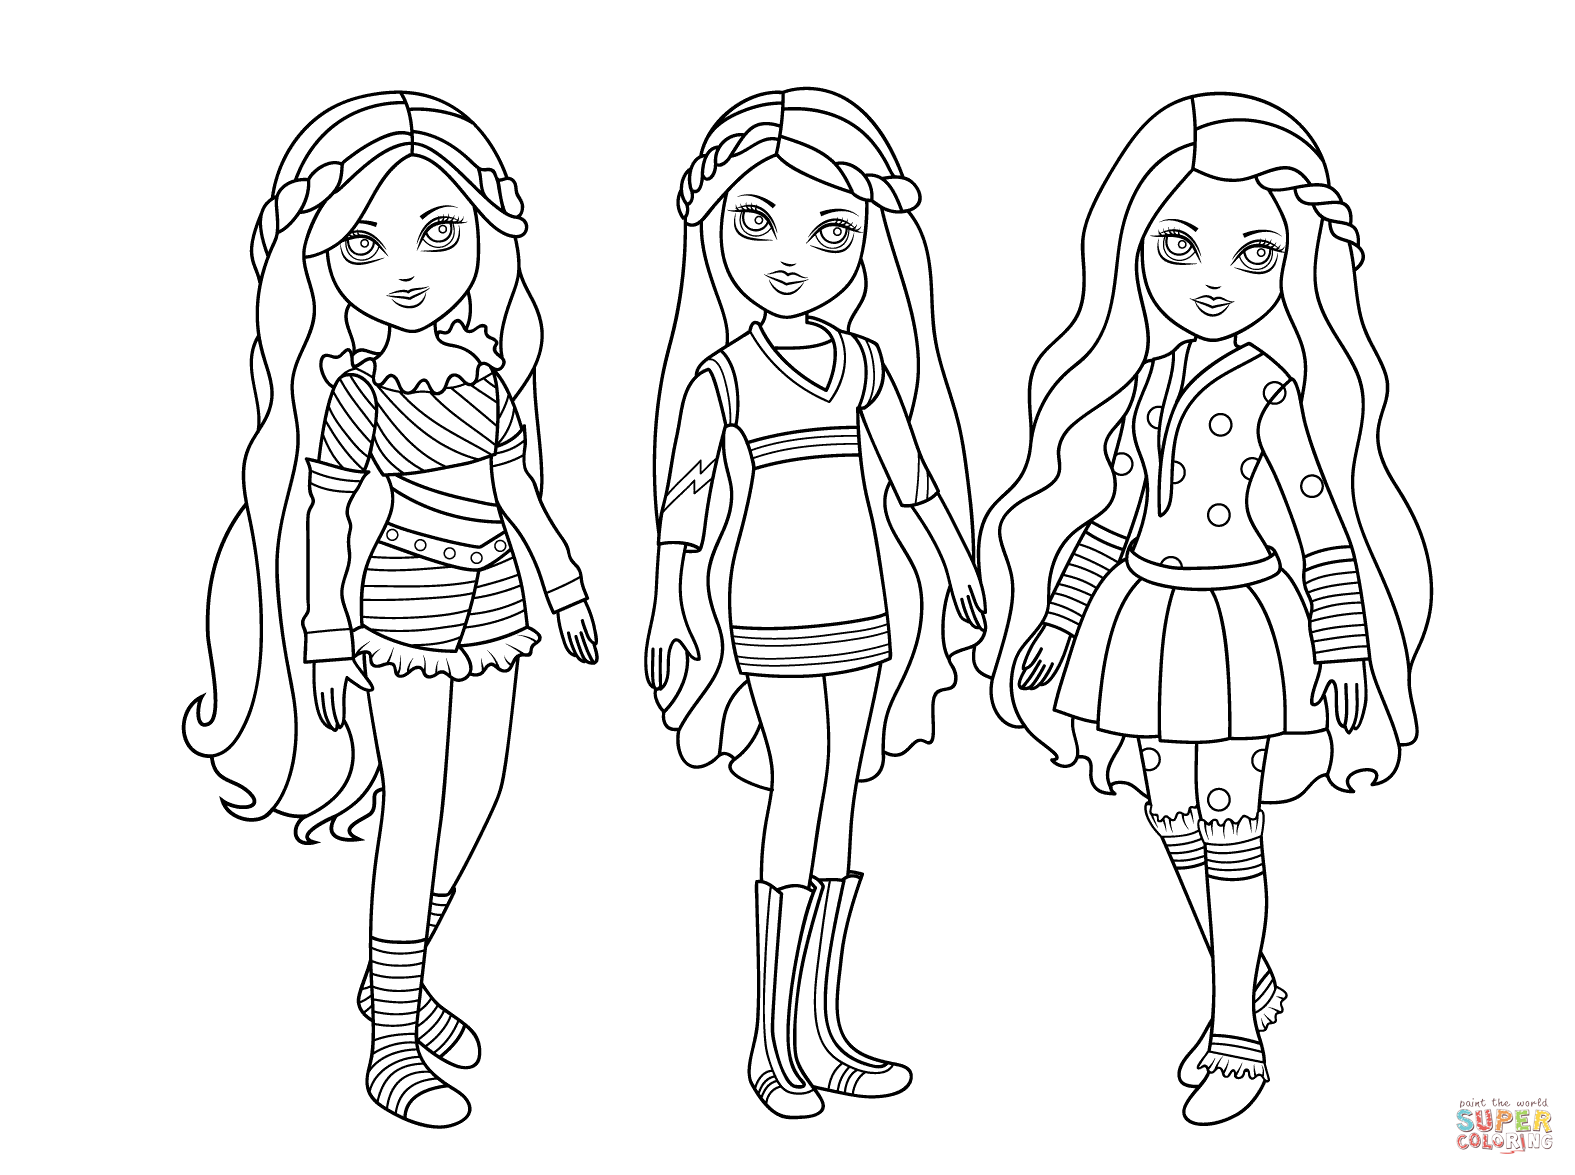 boxy girls coloring pages candy box chibi commission sketch by yampuff on deviantart boxy coloring girls pages